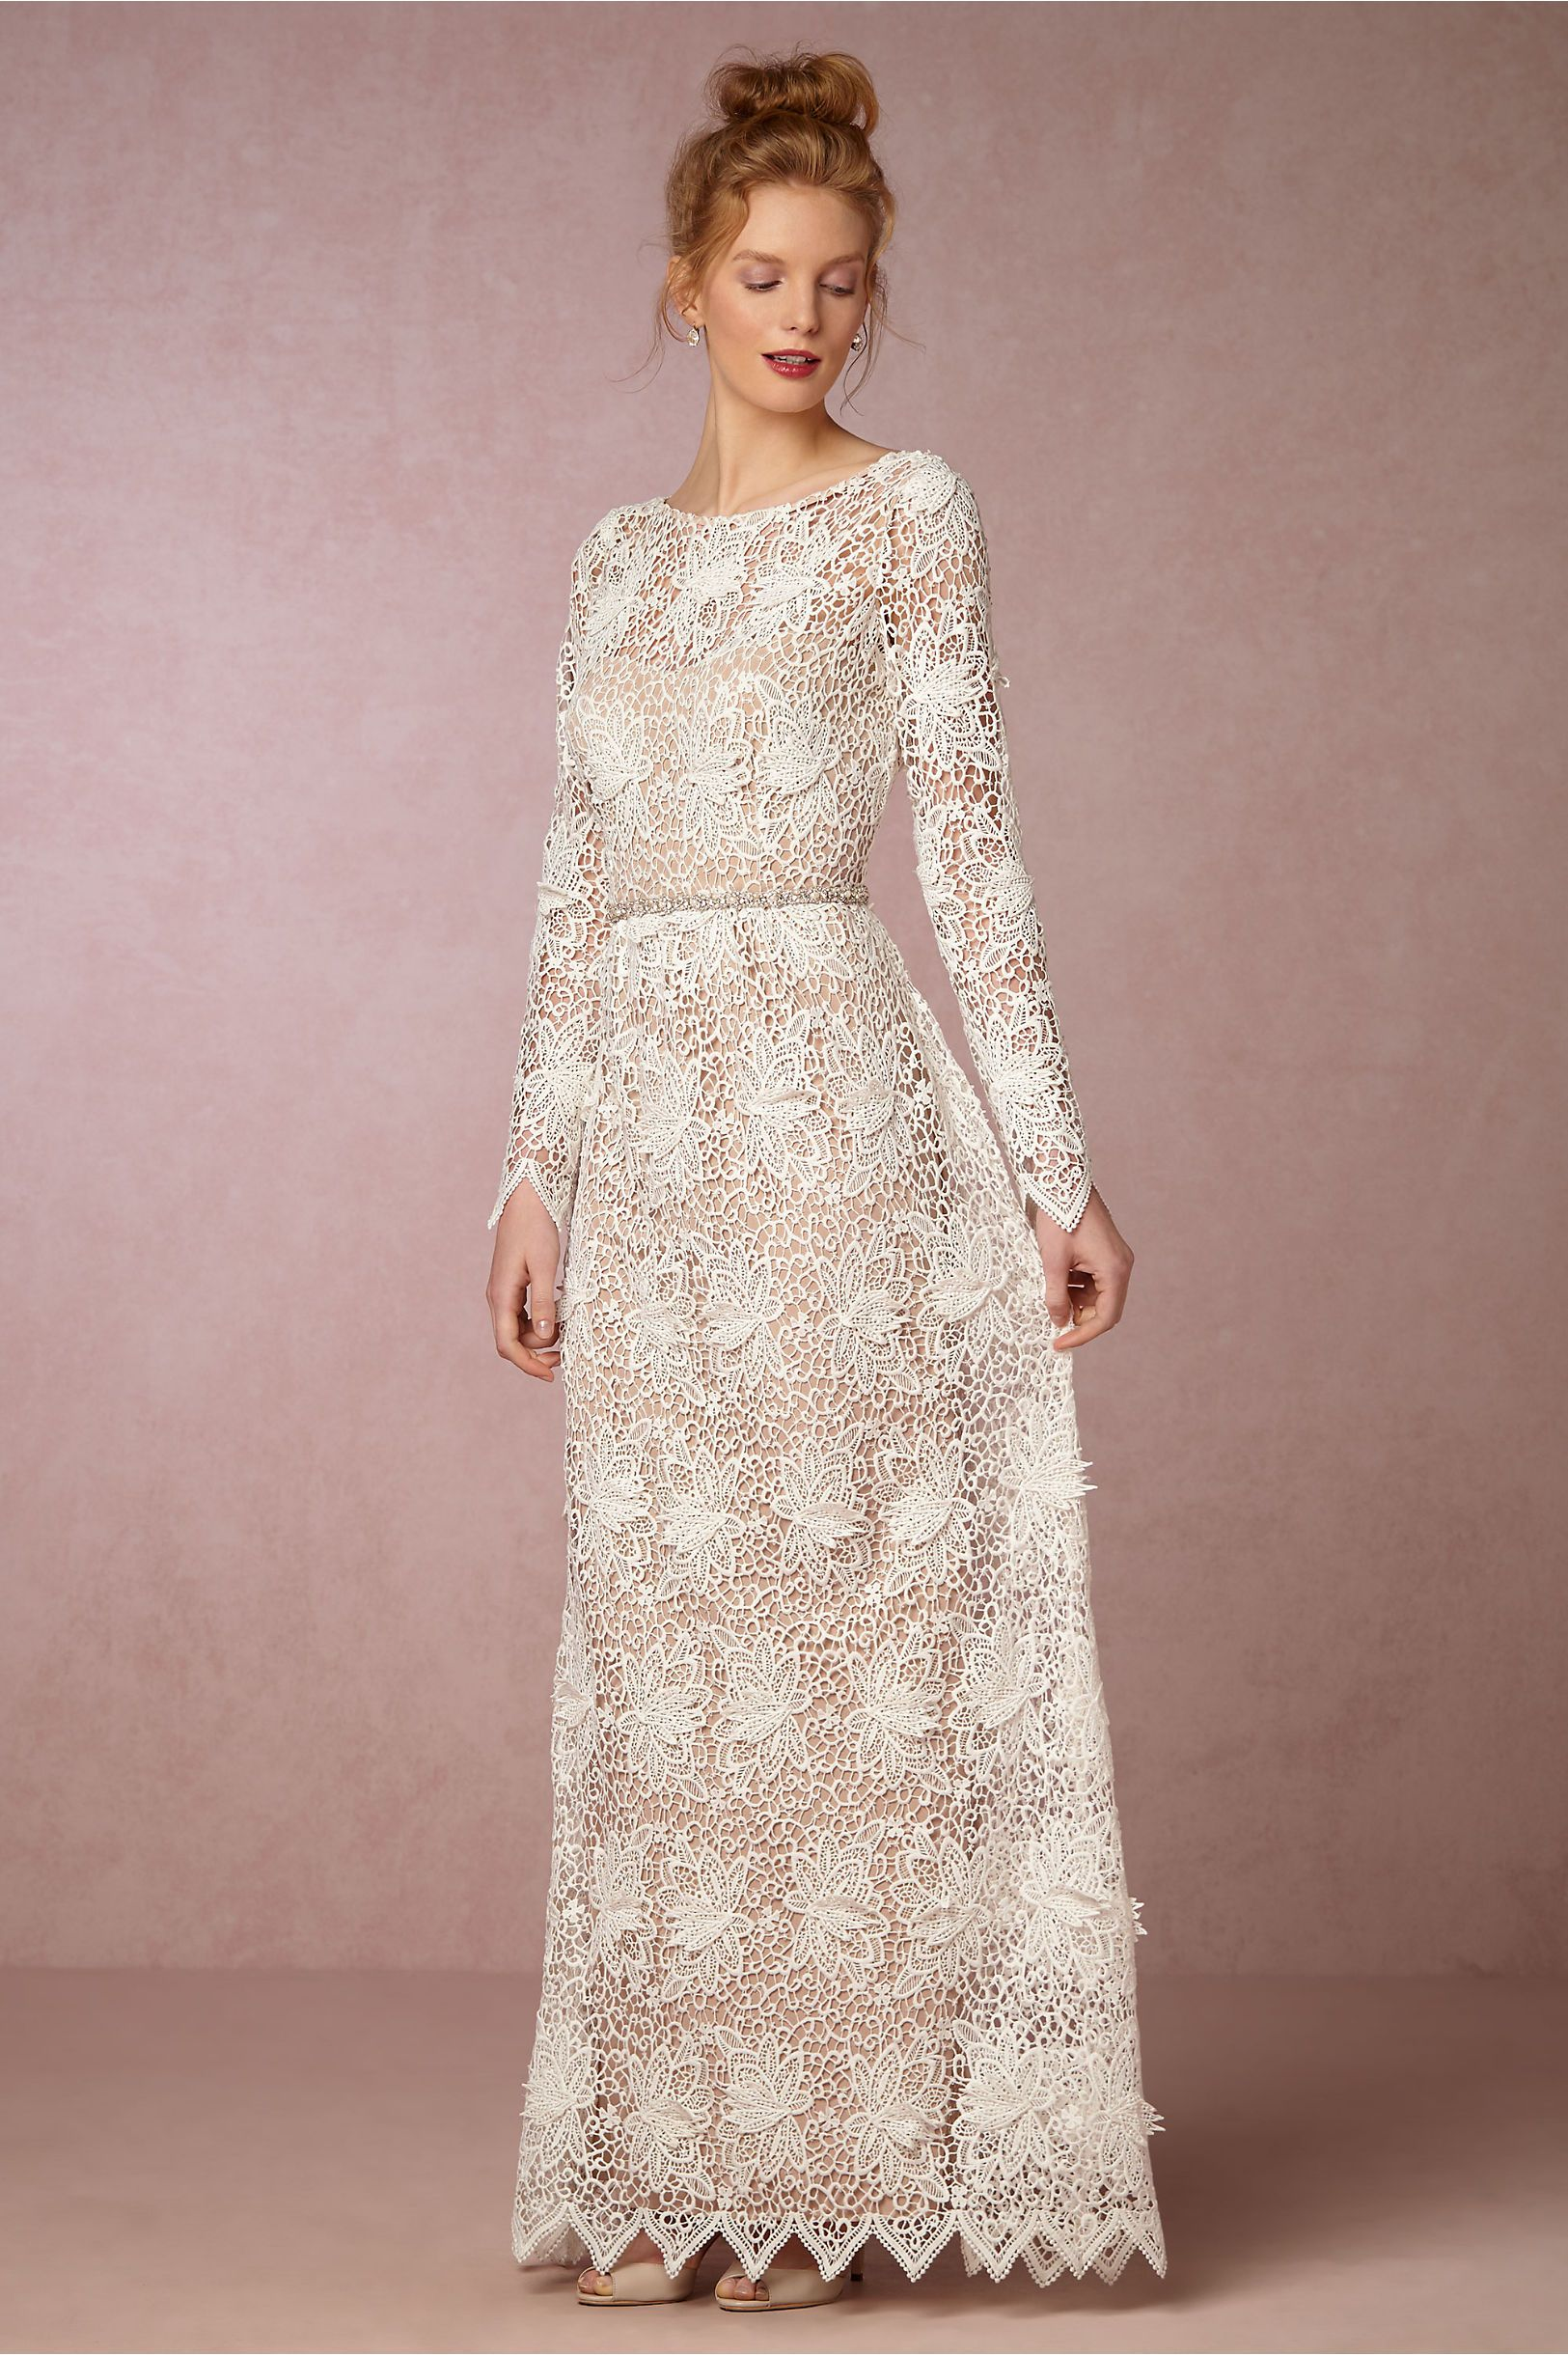 standout graphic lace | Landry Dress from BHLDN